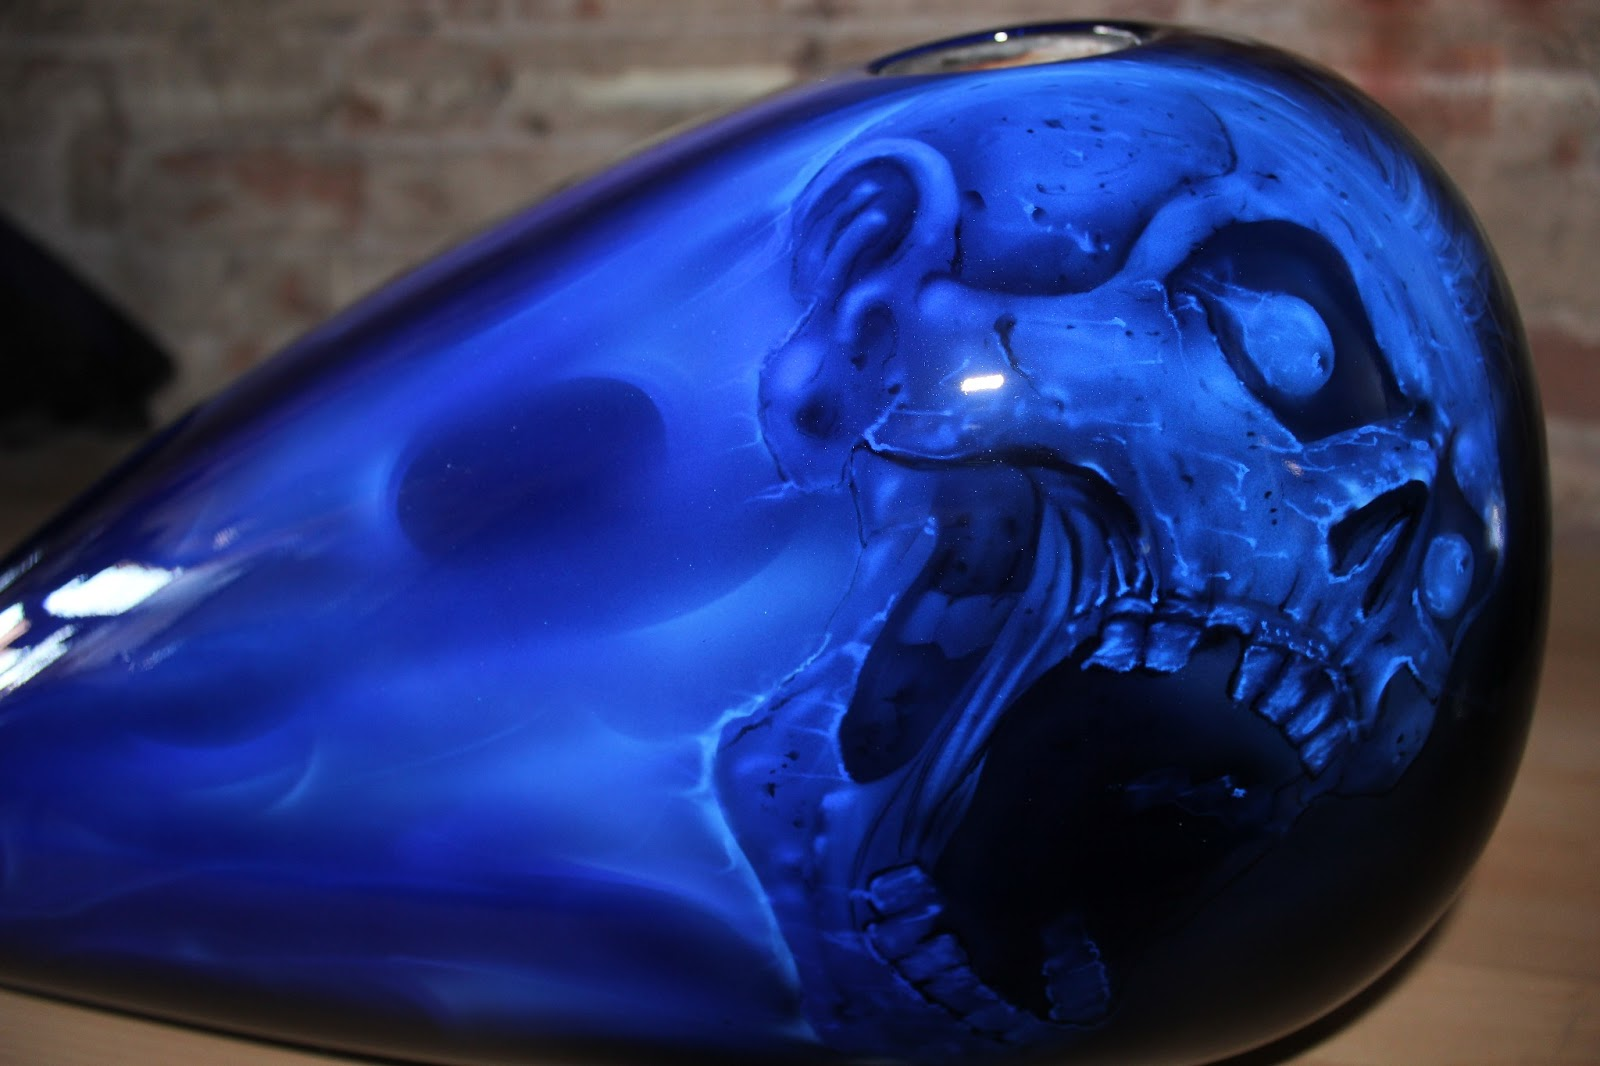 Online Motorcycle Paint Shop: Candy cobalt blue fire and skulls